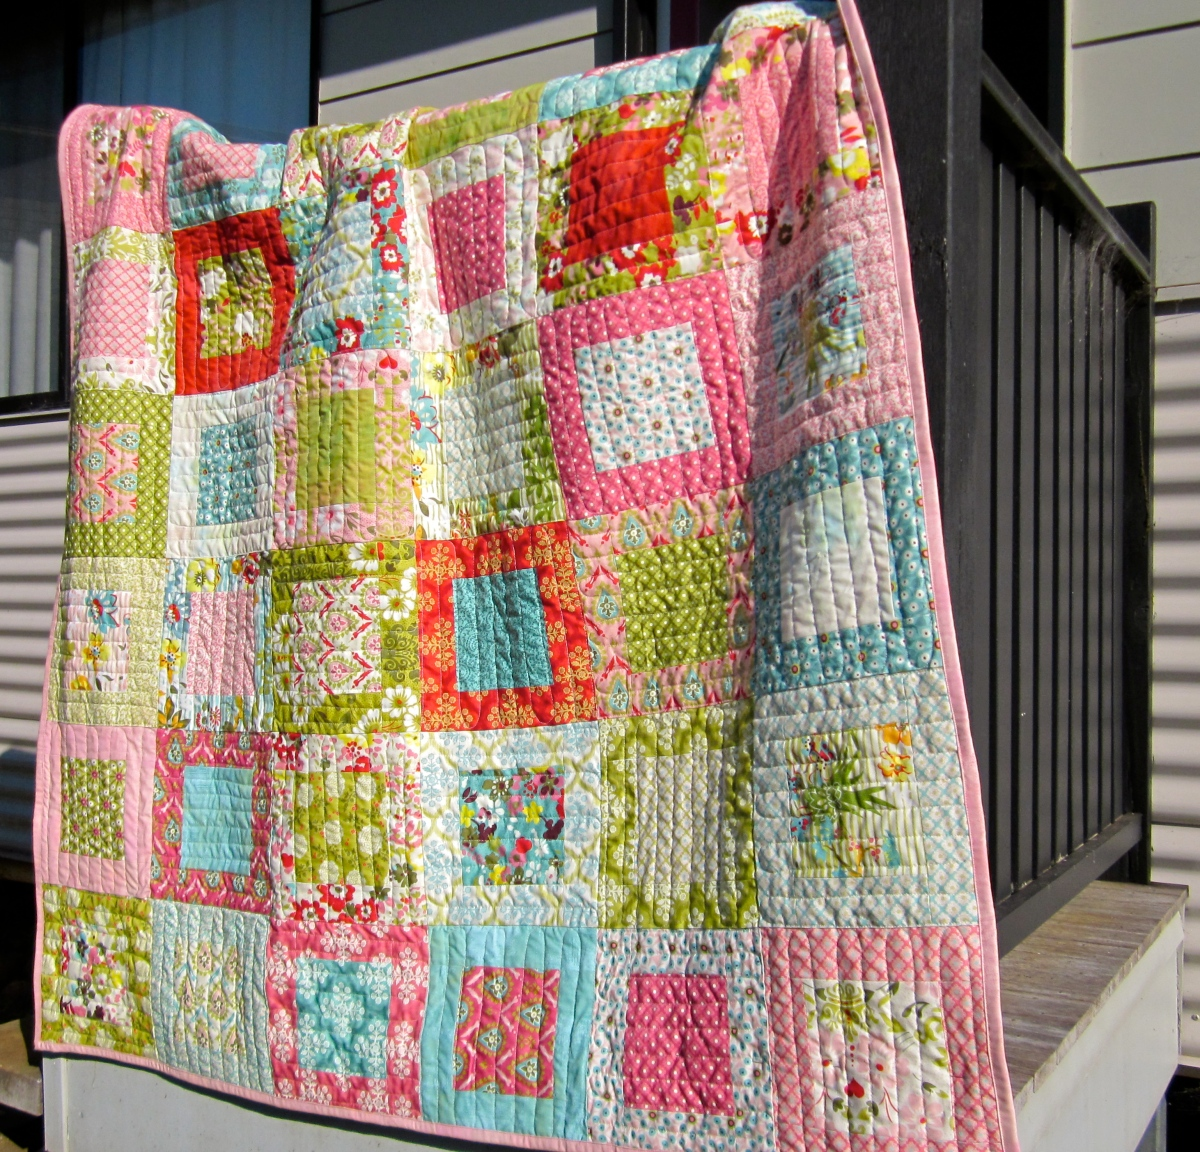 Framed My Most Popular Moda Layer Cake Quilt Tutorial